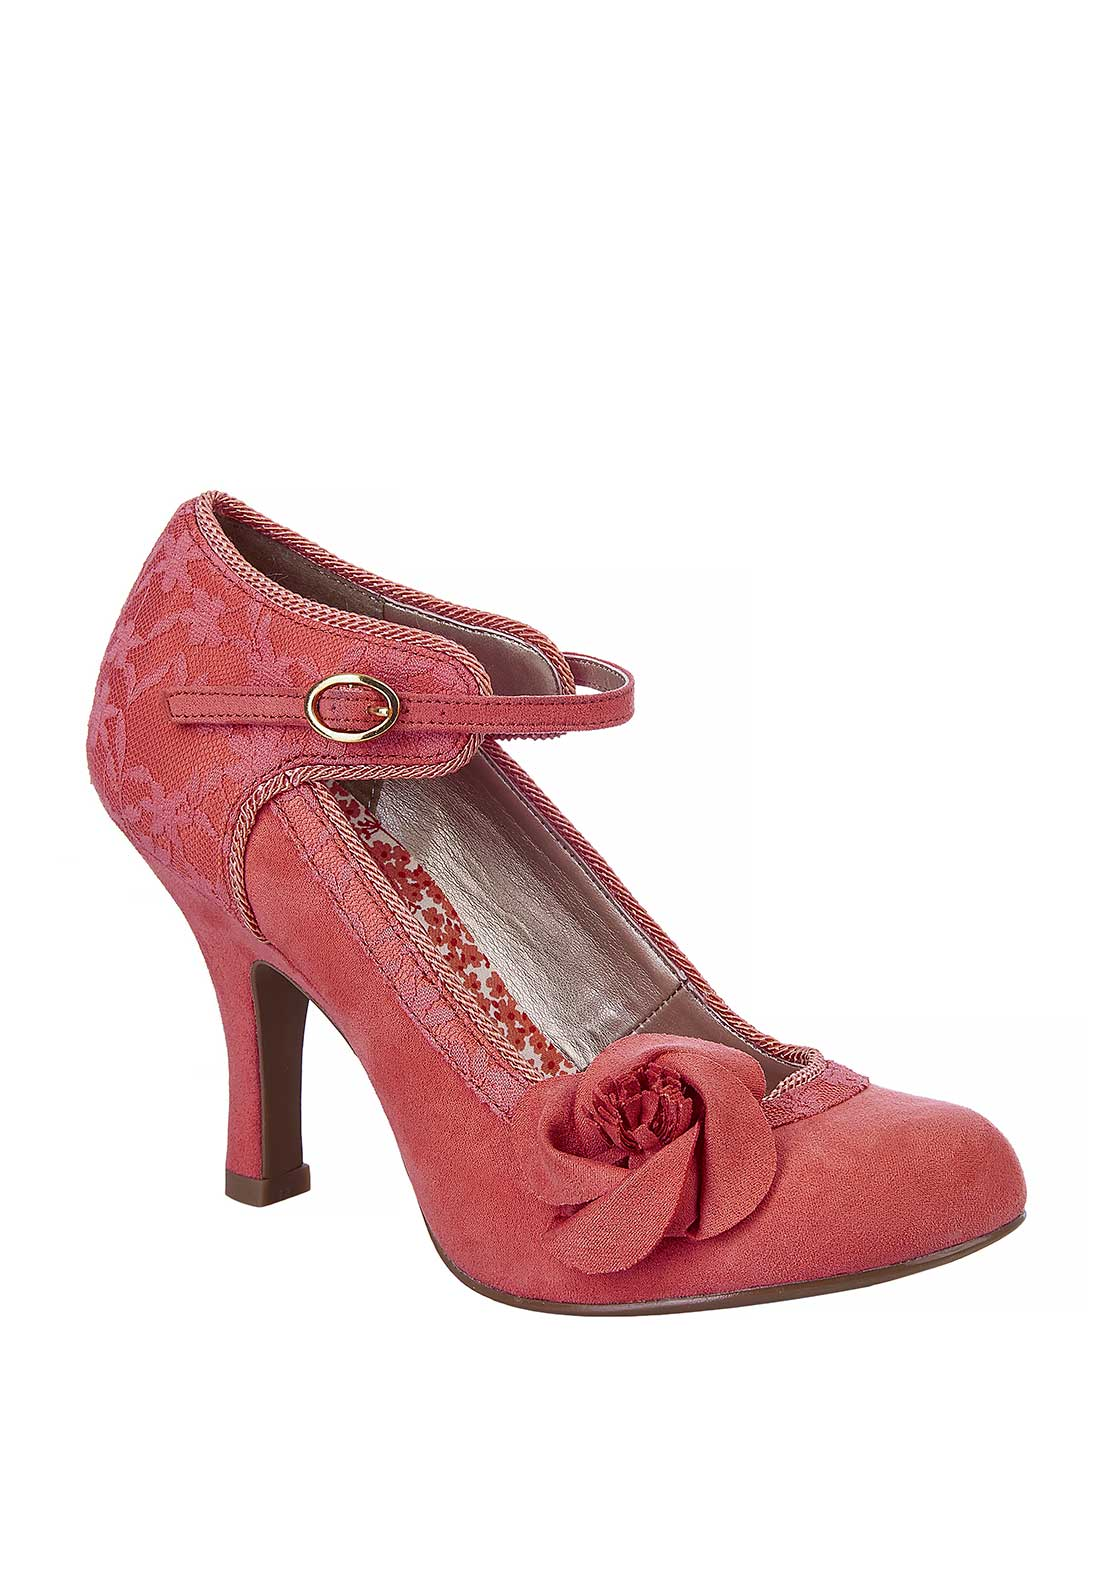 Ruby Shoo Anna Flower Ankle Strap Heeled Shoes, Coral